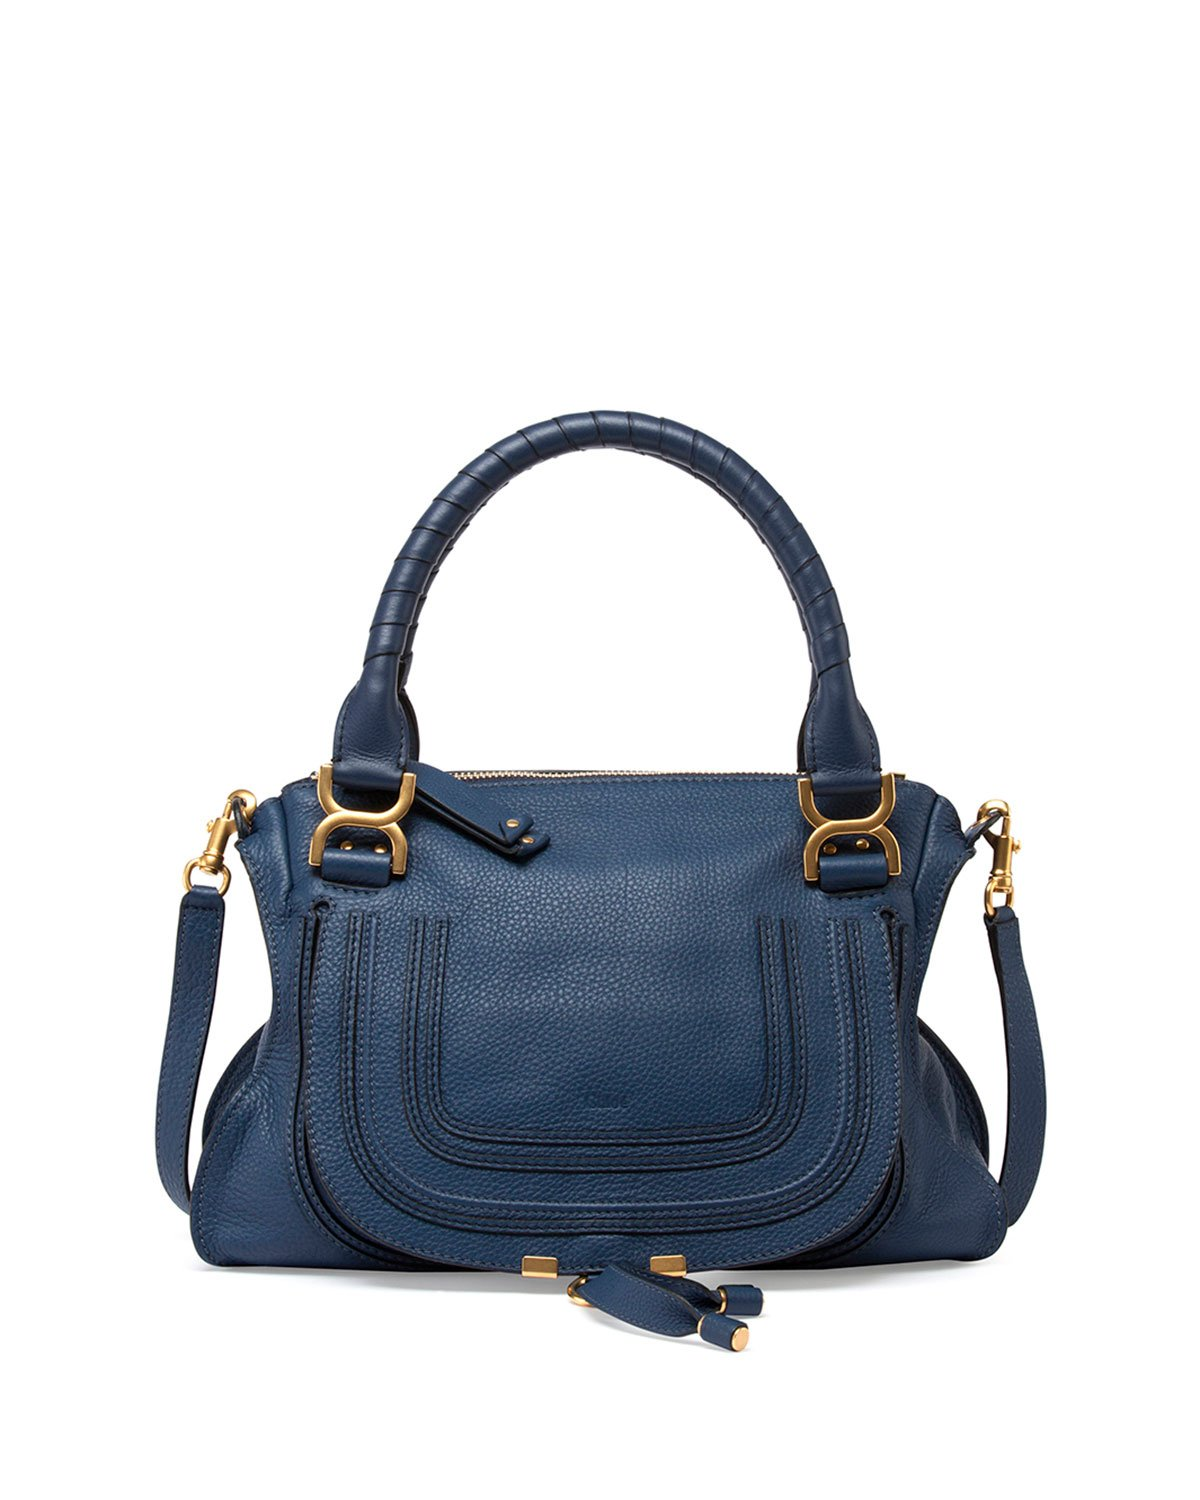 chlo marcie medium leather satchel in blue lyst. Black Bedroom Furniture Sets. Home Design Ideas